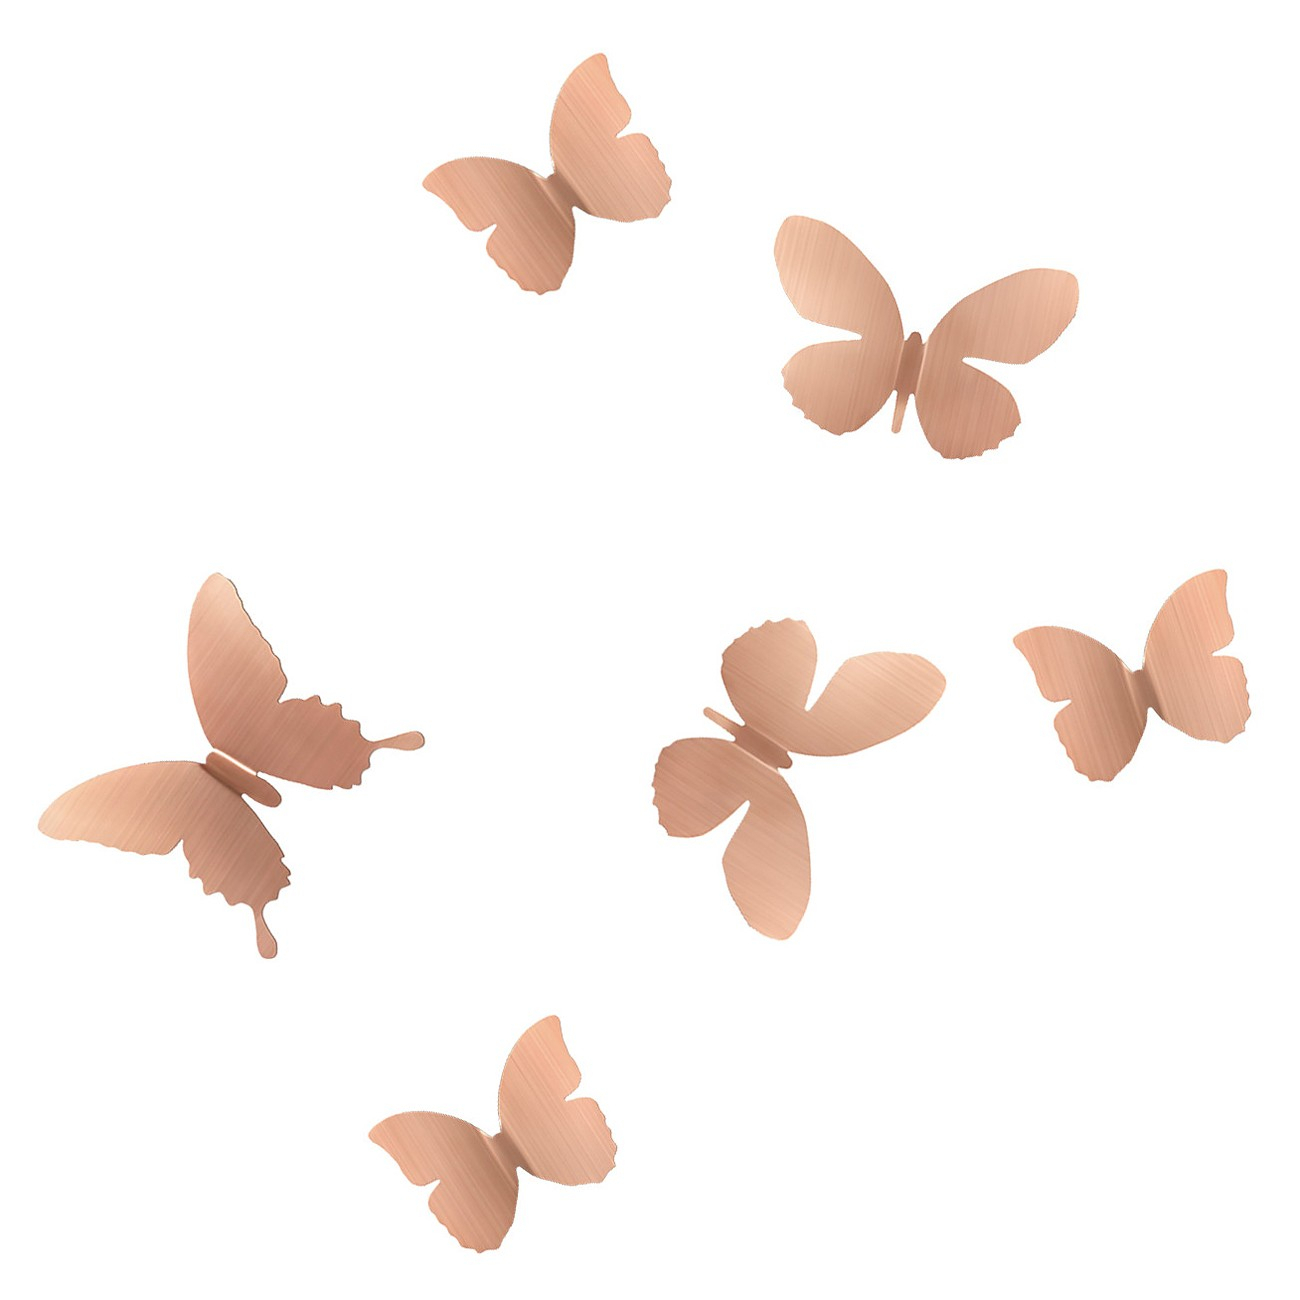 Mariposa Metal Wall Decor (Copper) - Umbra | Design Is This for Mariposa 9 Piece Wall Decor (Image 16 of 30)